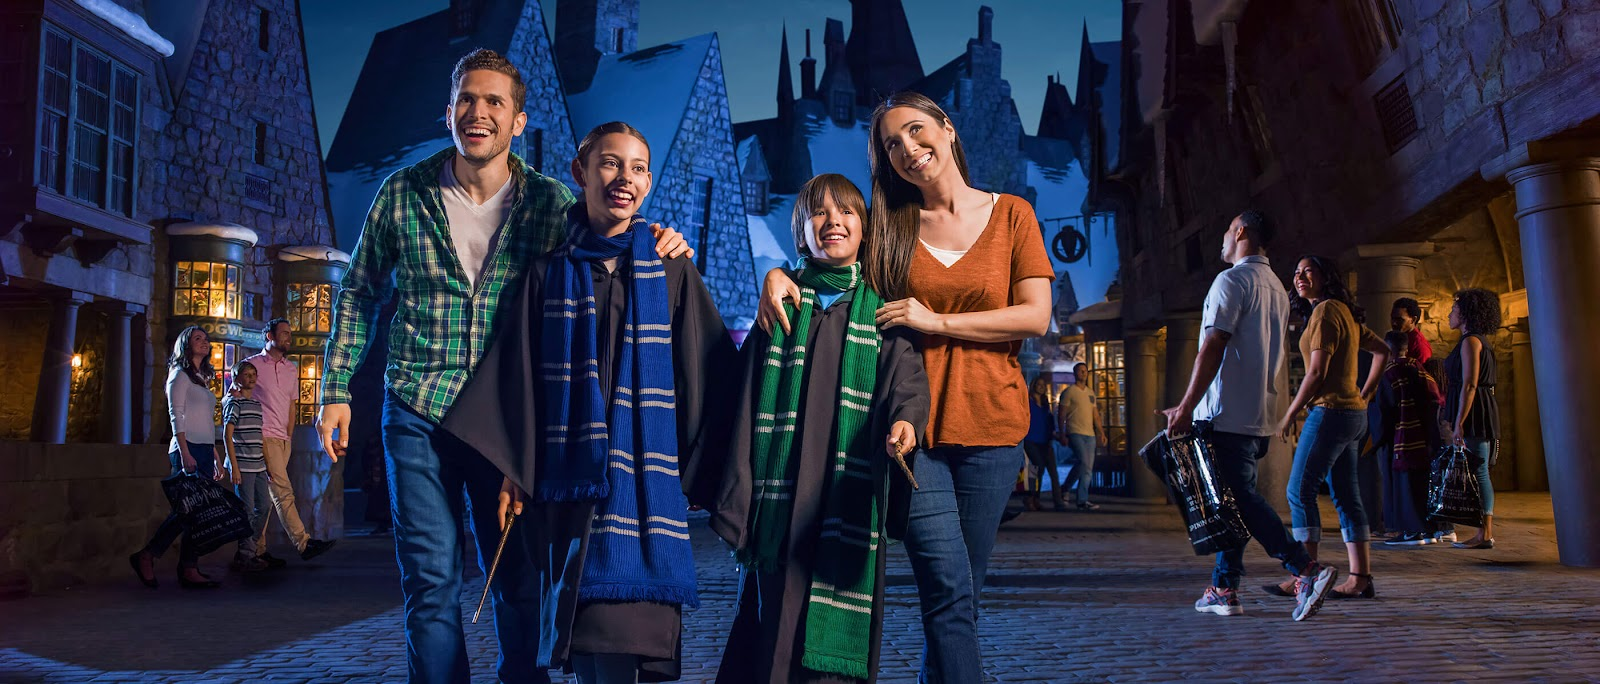 A family of four walking in the Wizarding World of Harry Potter at Universal Studios.